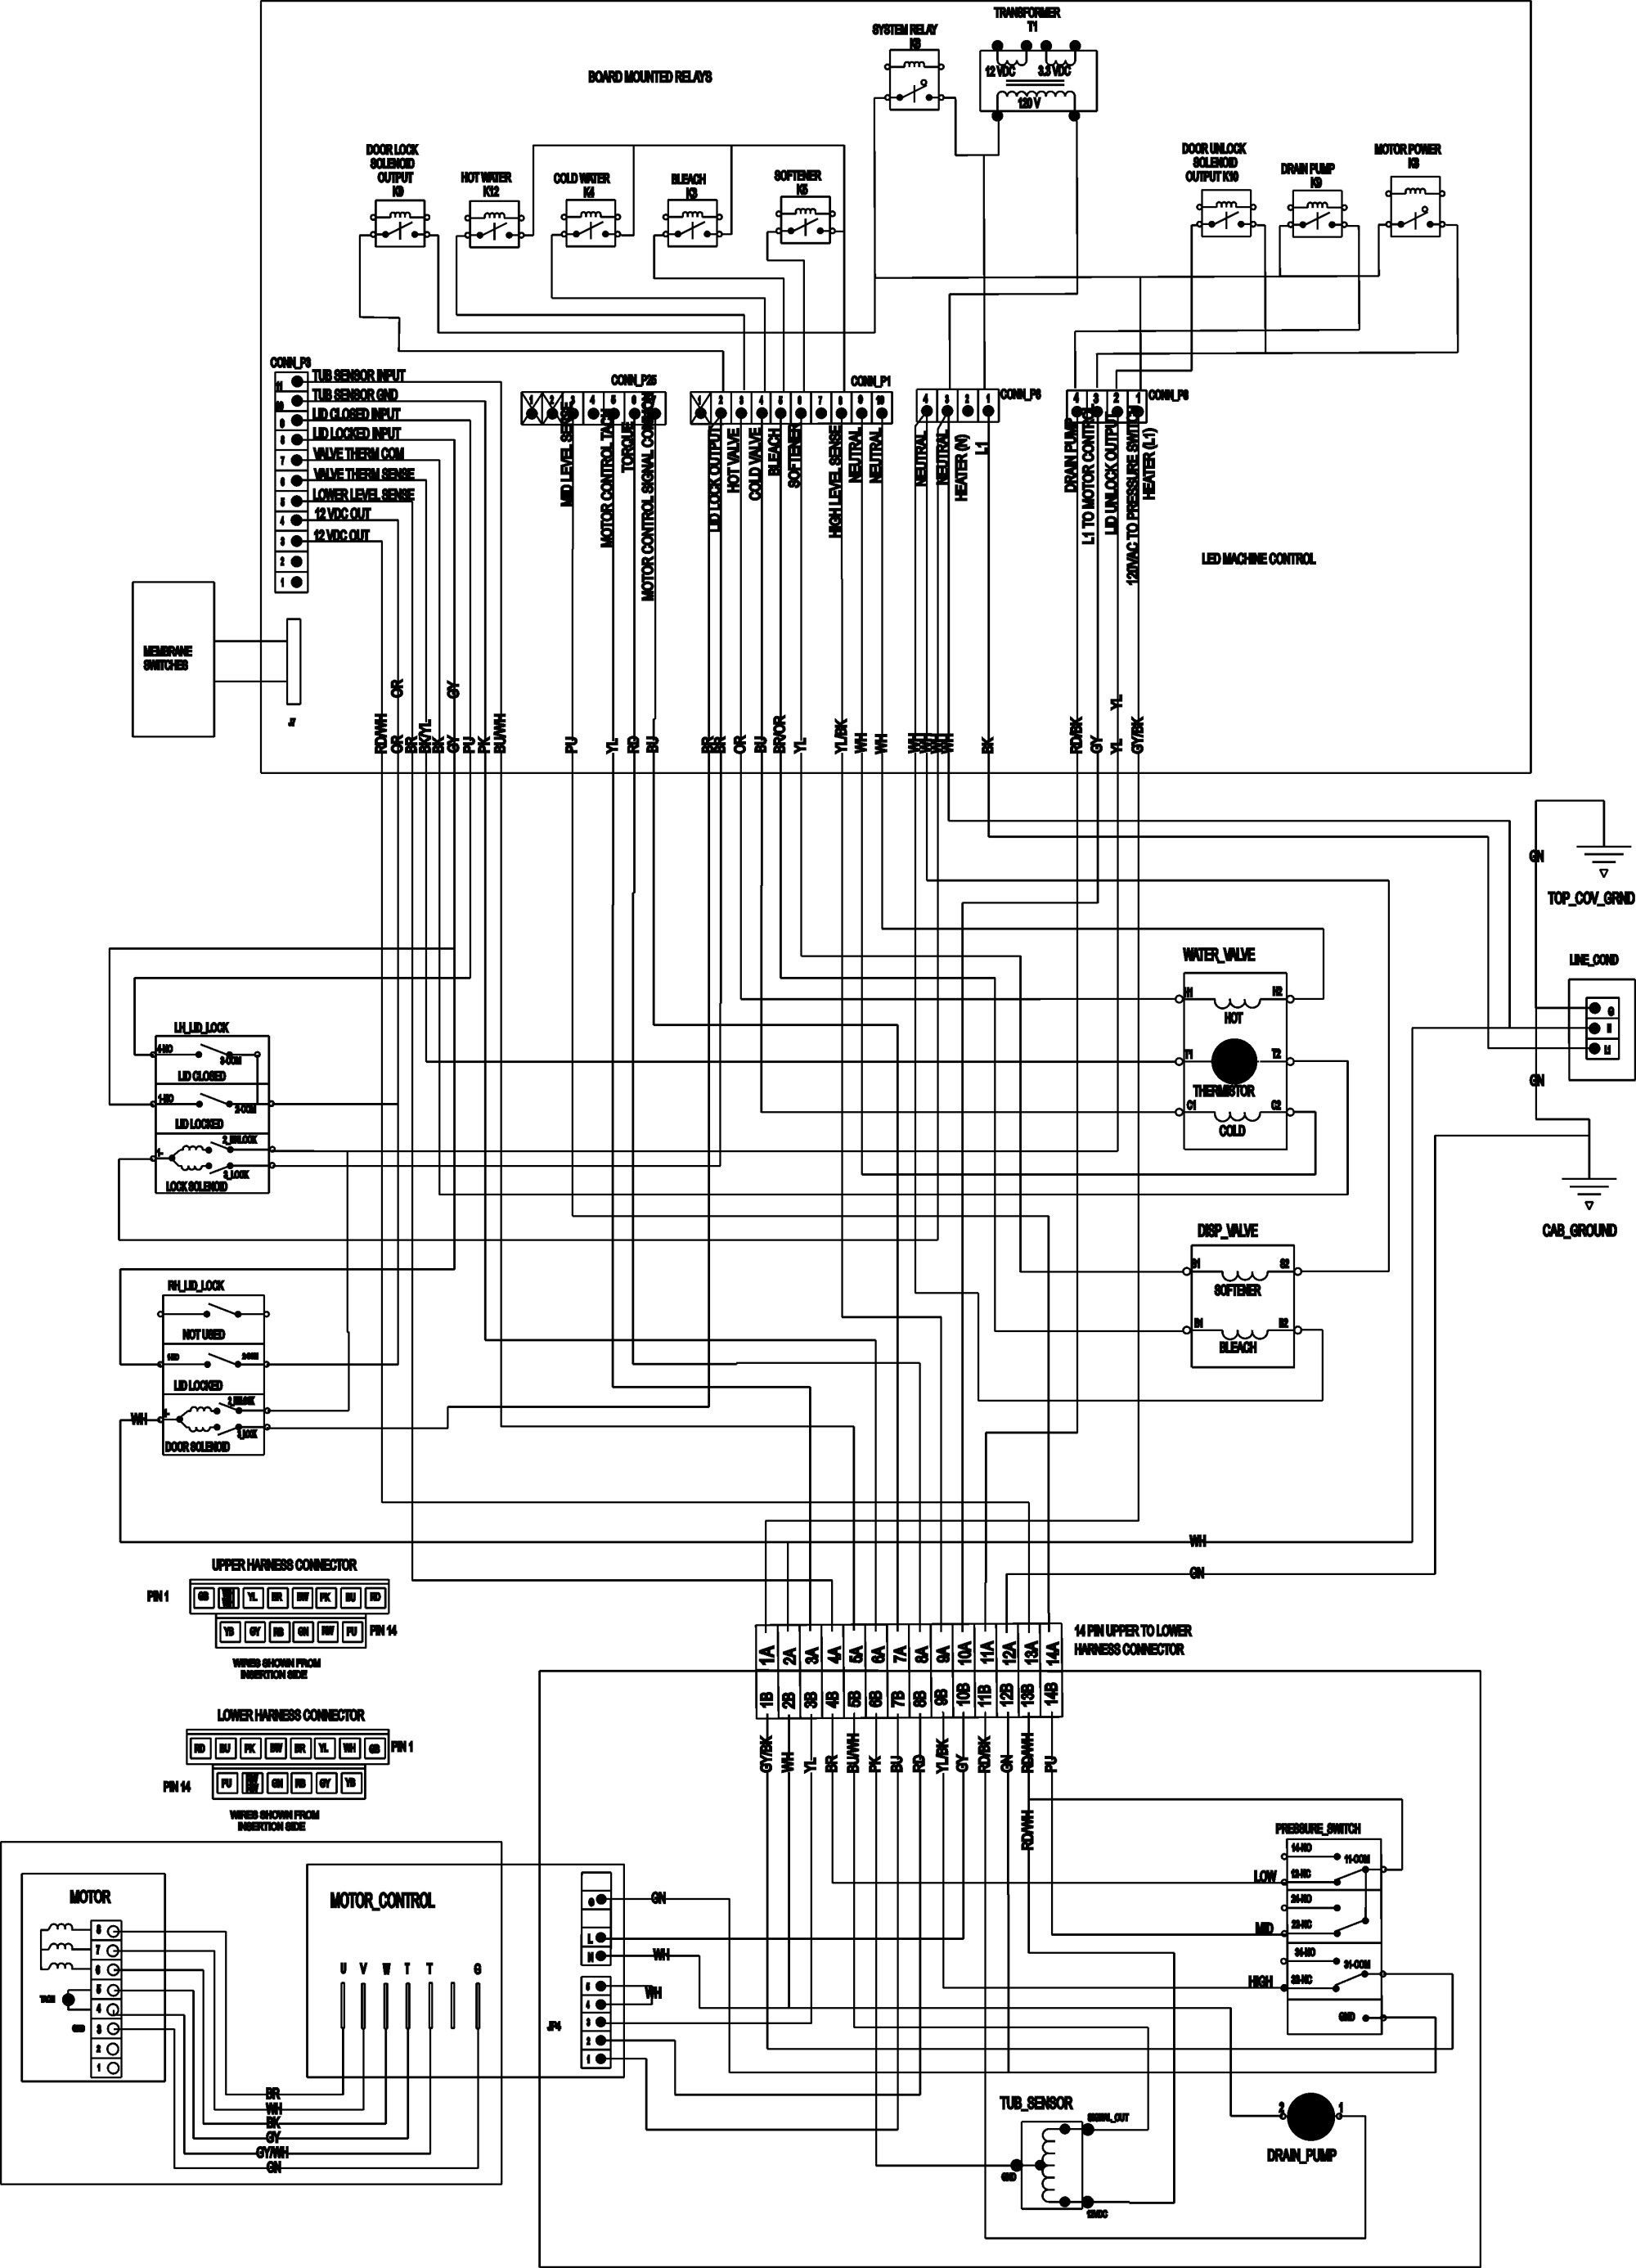 hight resolution of maytag washer wire diagram wiring library maytag washer wiring diagram maytag centennial washer wiring diagram download